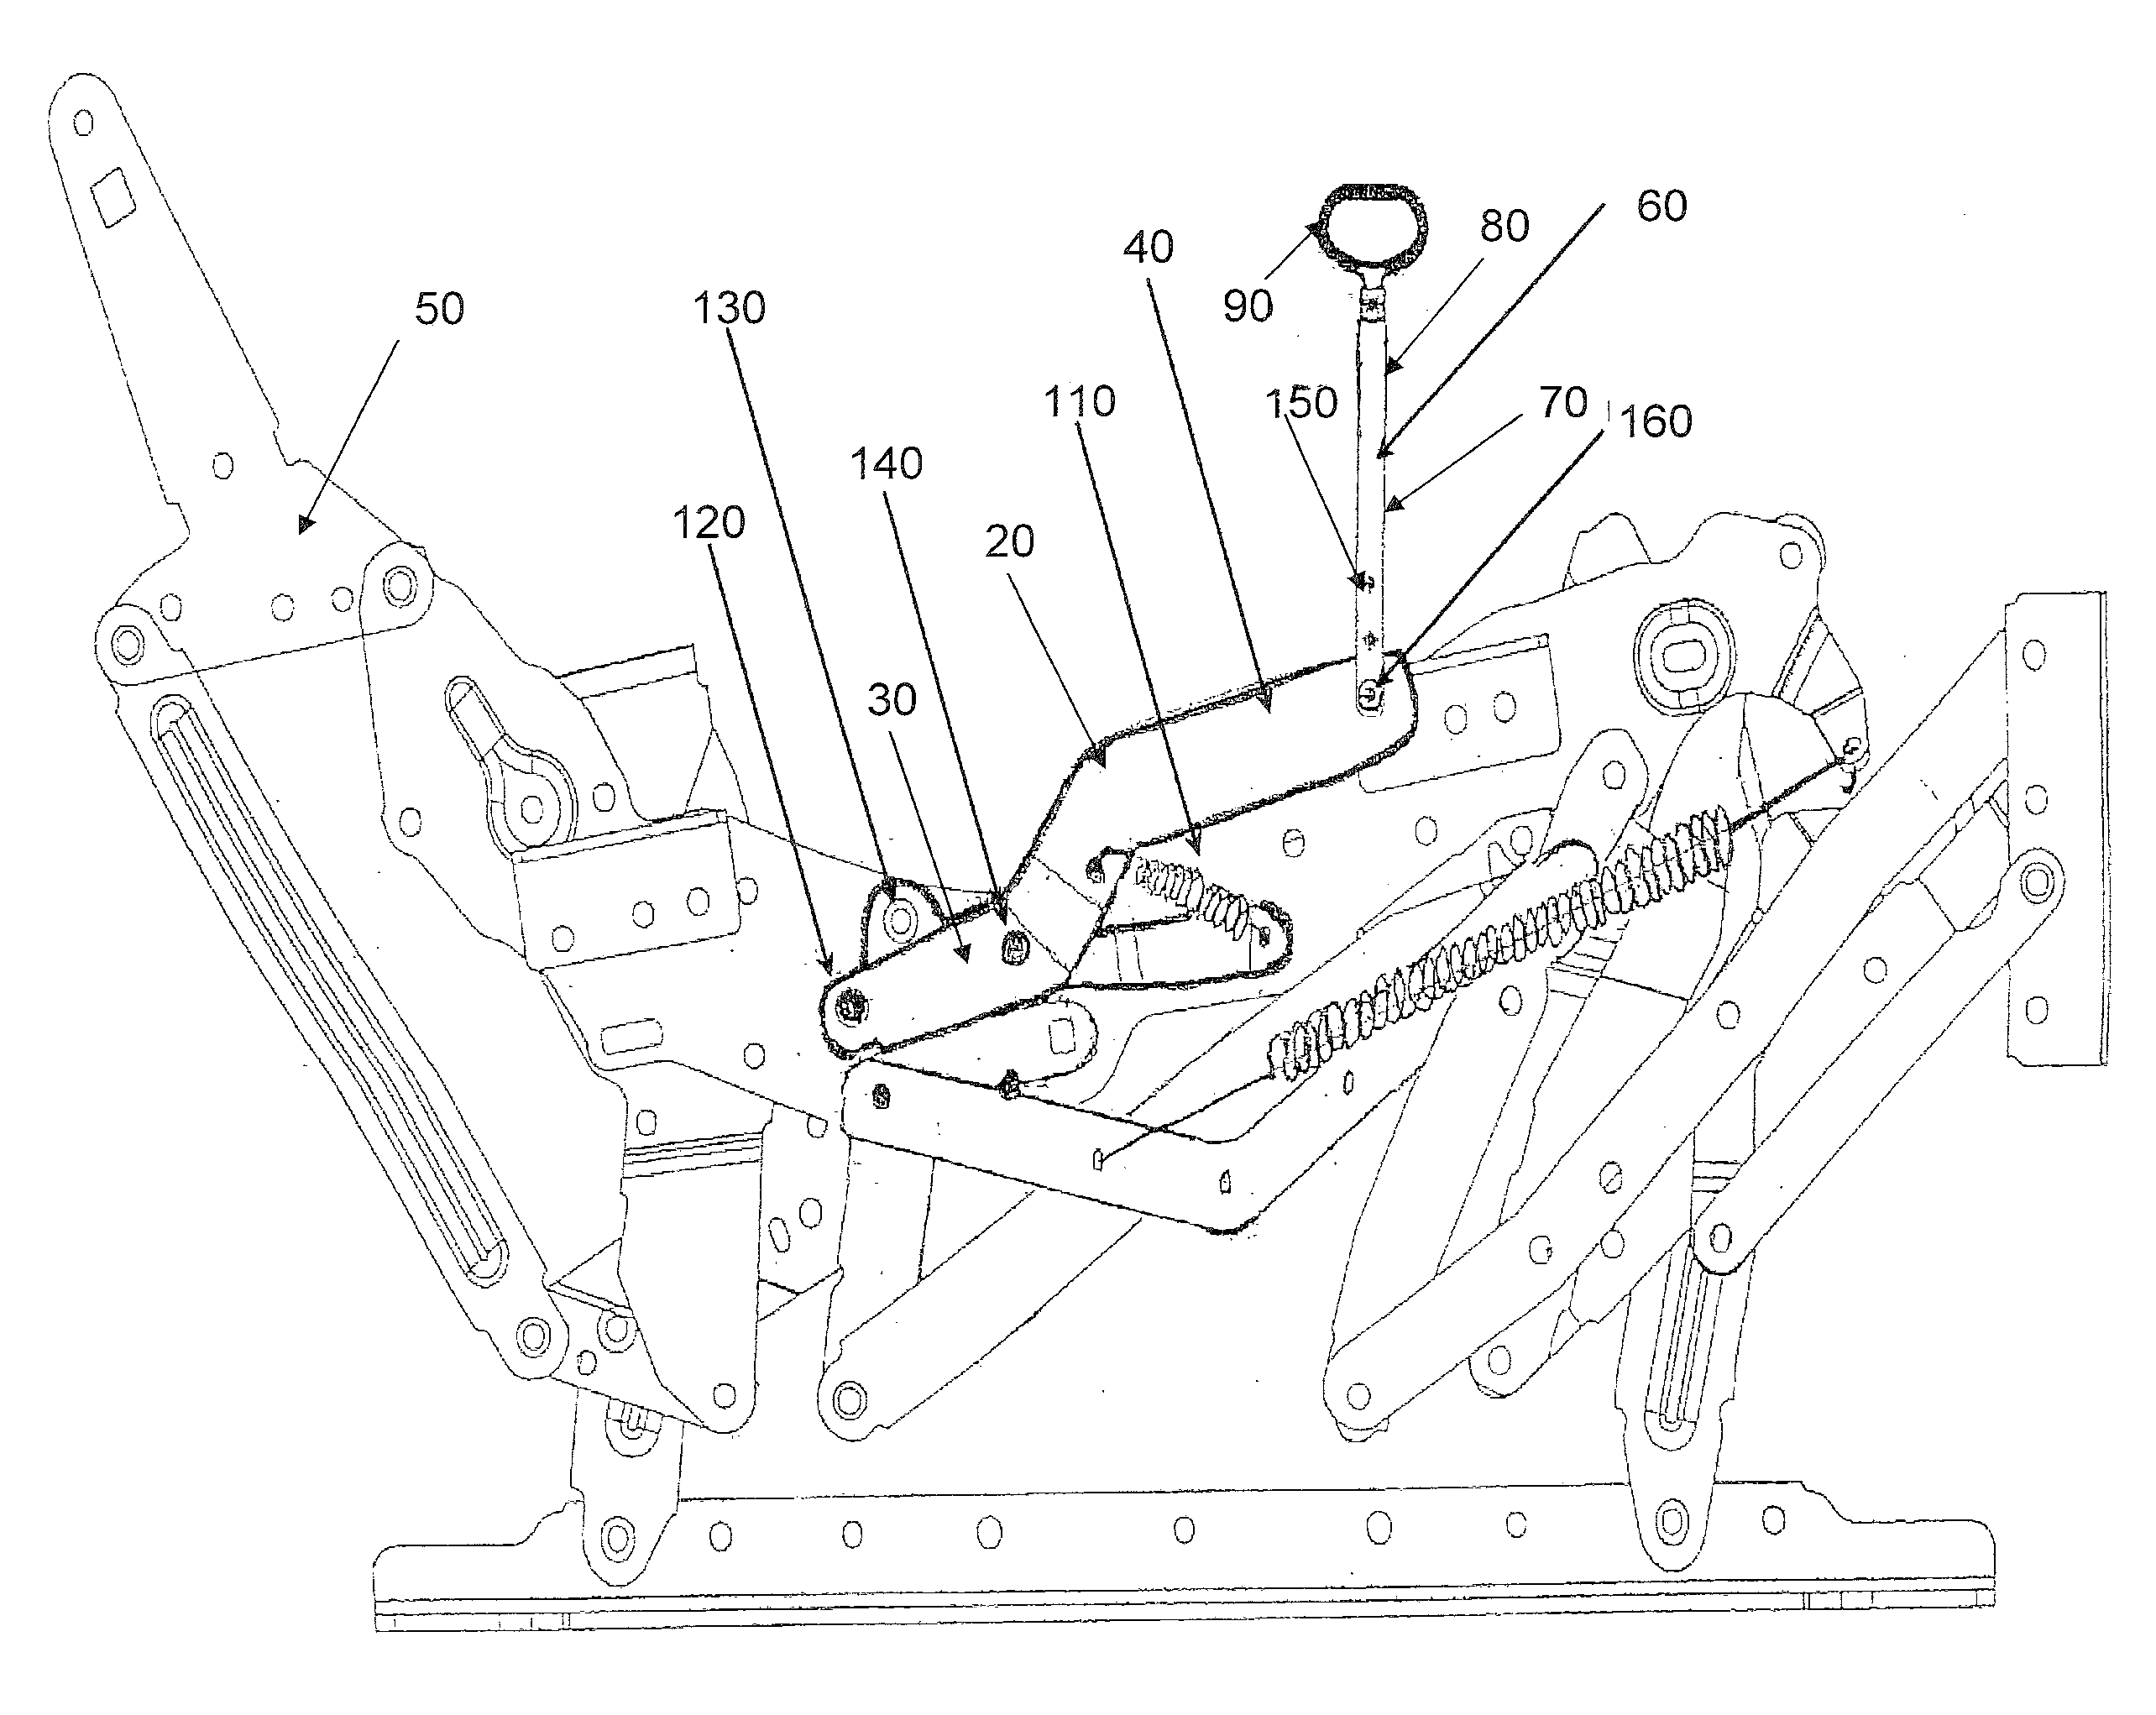 Patent Drawing  sc 1 st  Google & Patent US20120256468 - Flexible Pull Strap Recliner Mechanism ... islam-shia.org